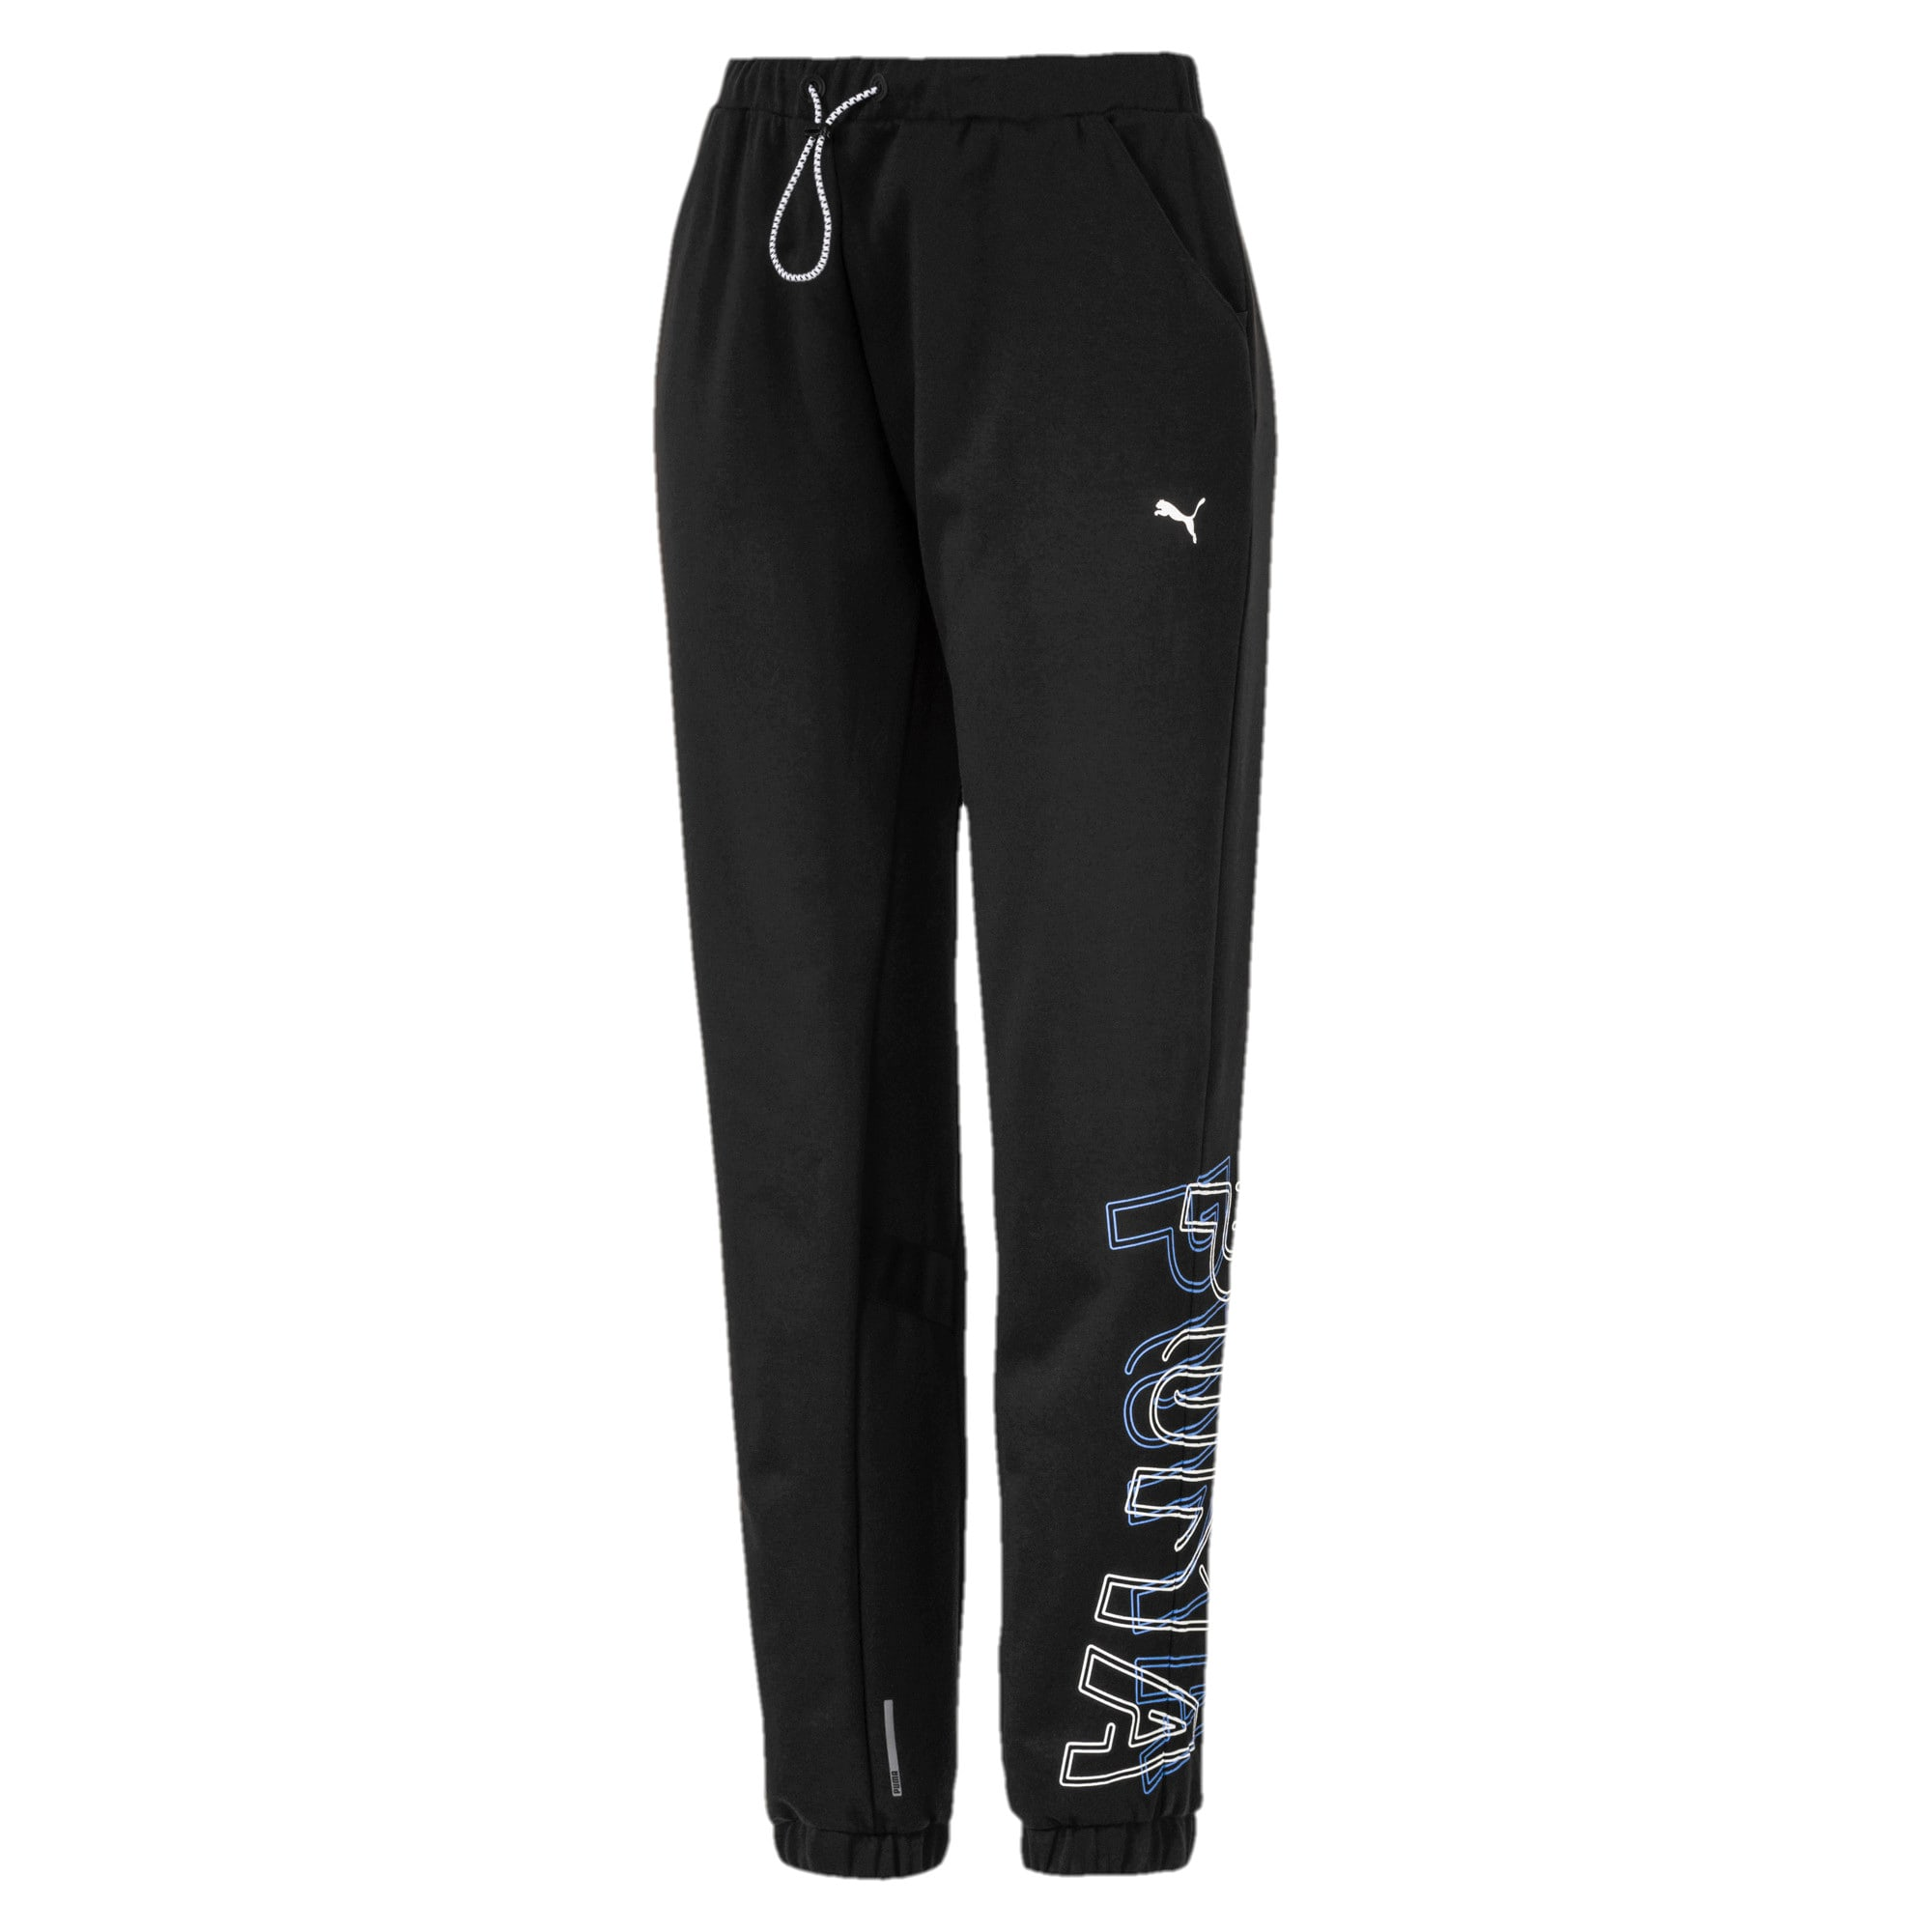 Thumbnail 4 of HIT Feel It Knitted Women's Training Sweatpants, Puma Black, medium